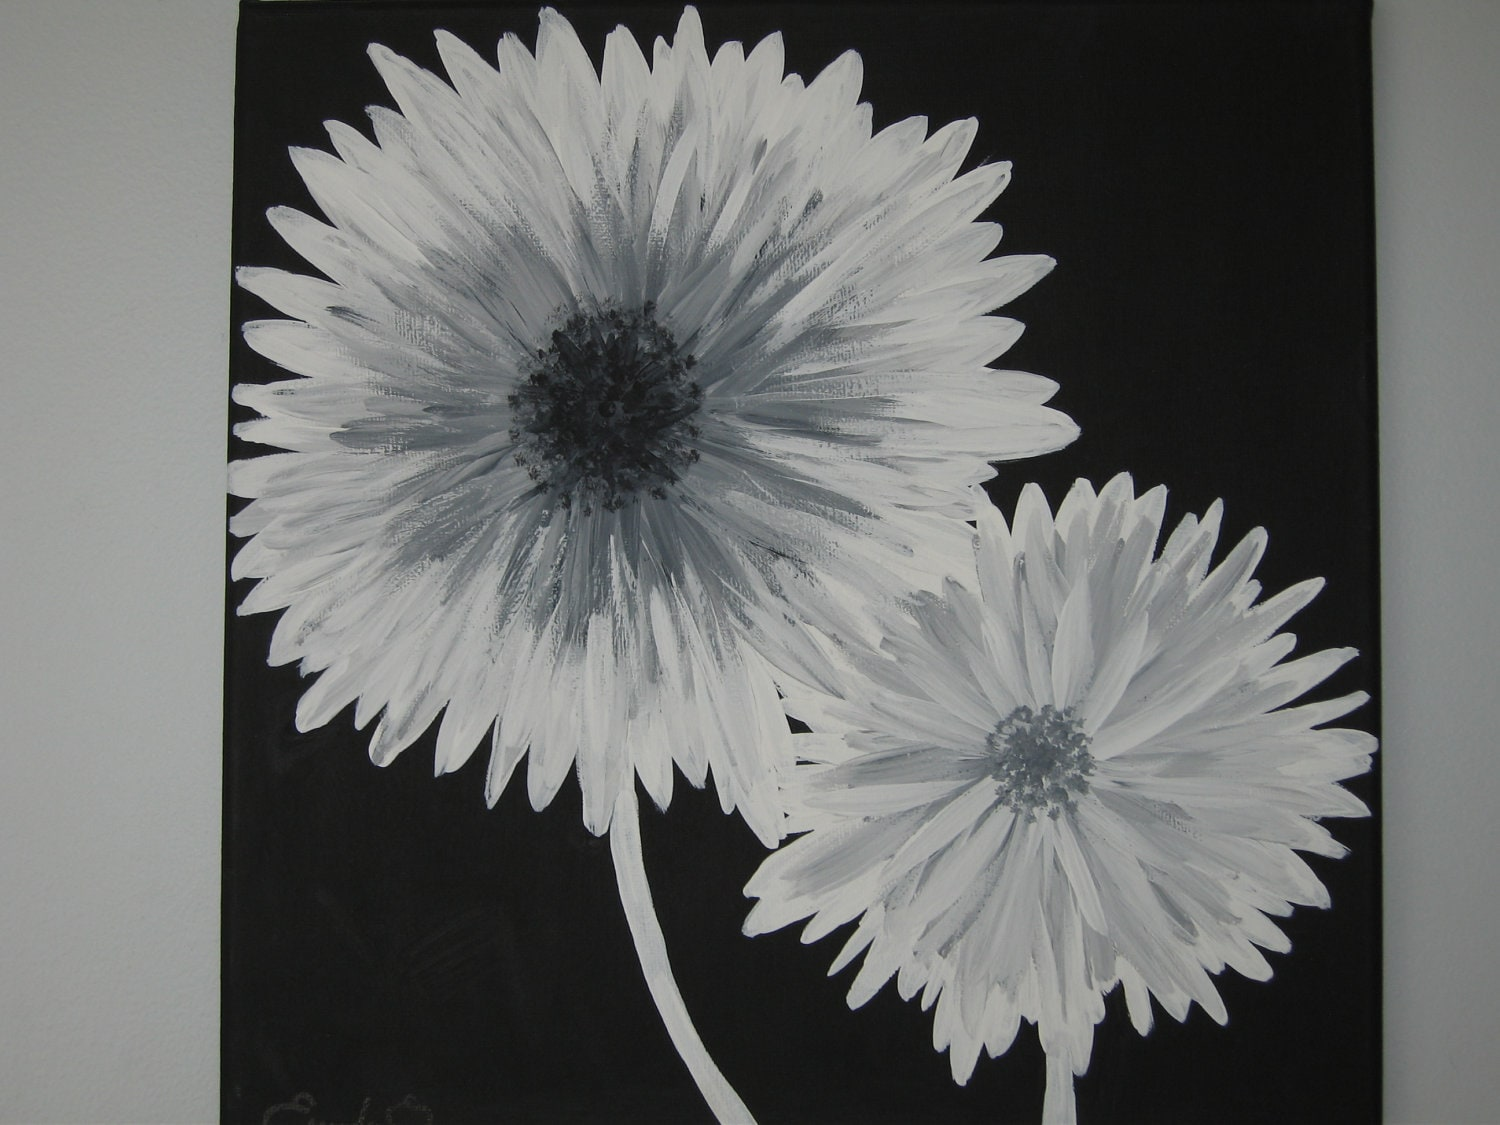 Modern Black White And Gray Daisy Flowers Acrylic Painting